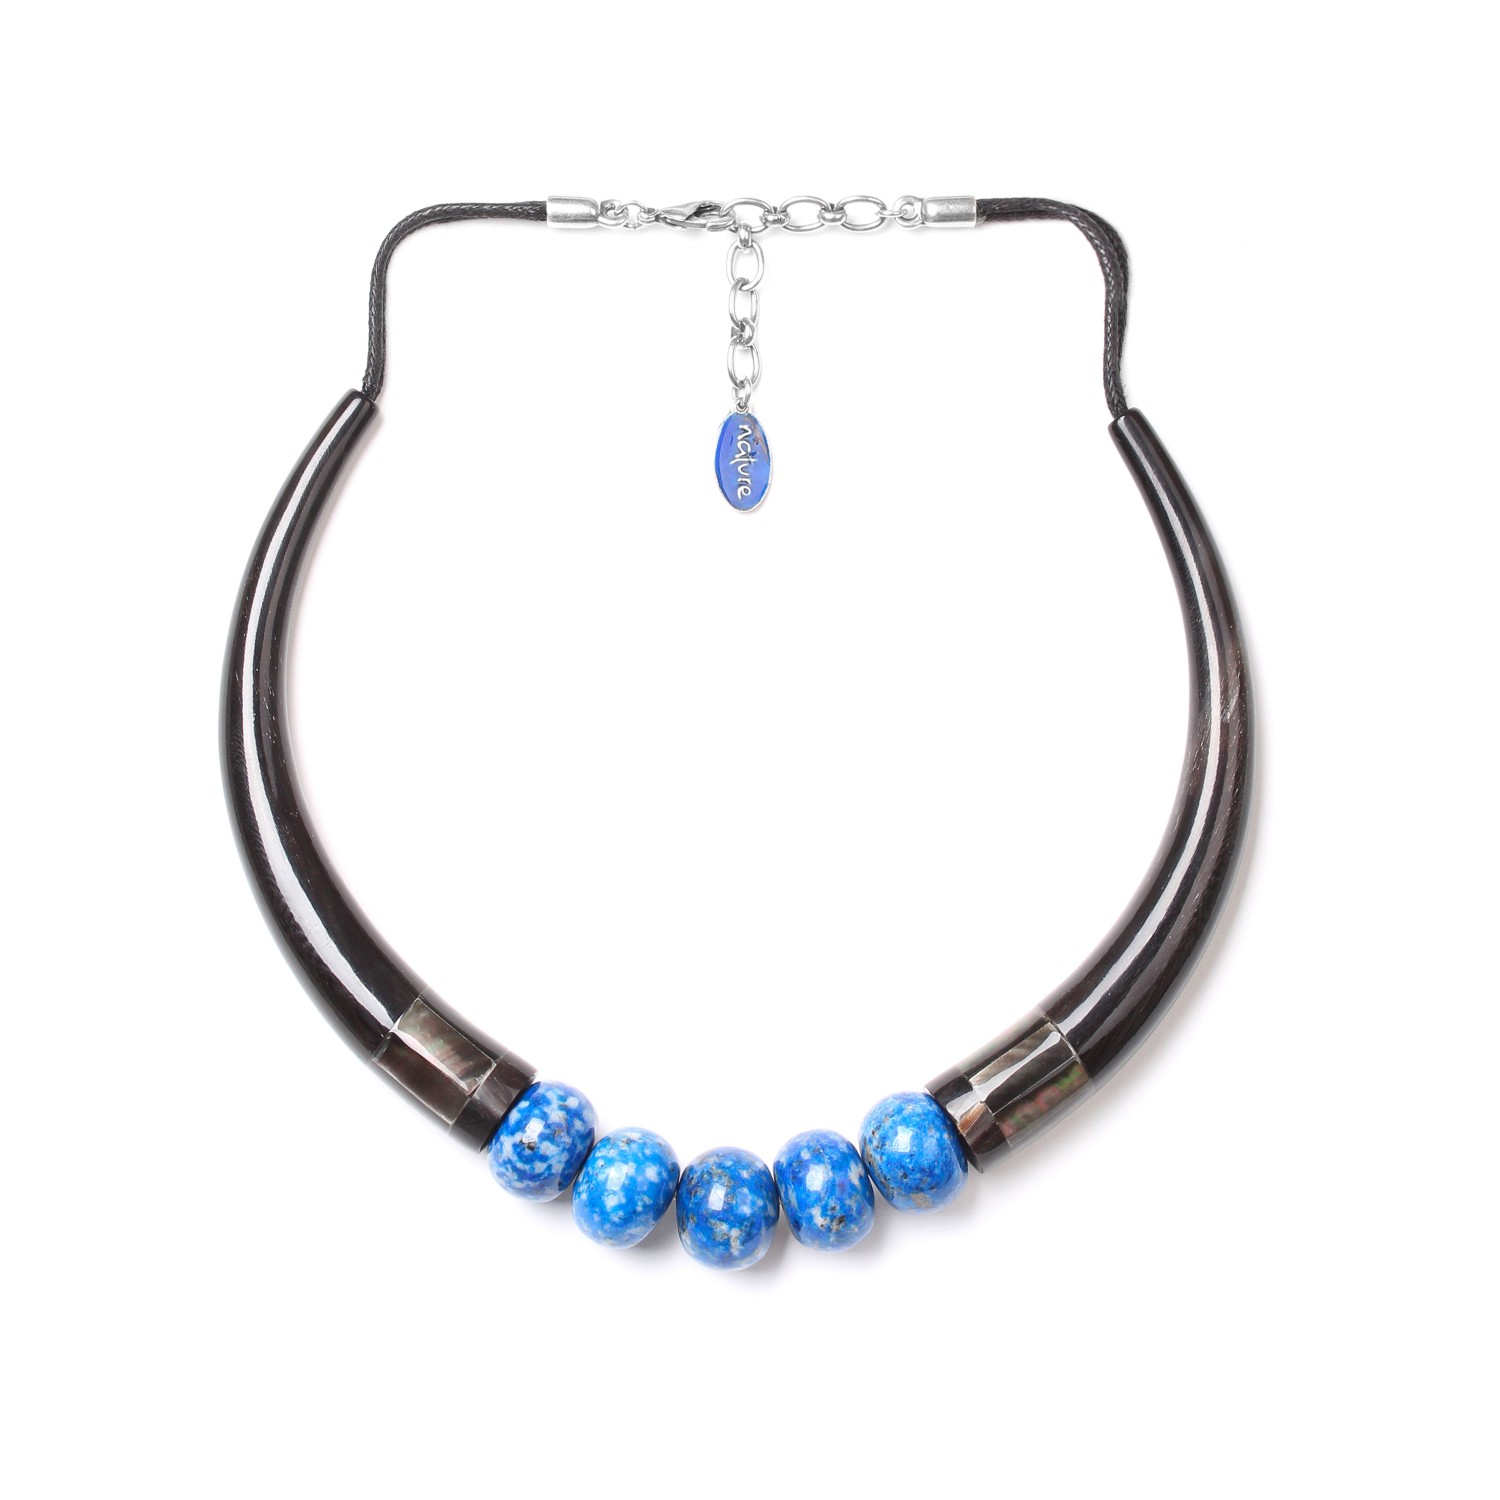 DEEP BLUE collier trompes